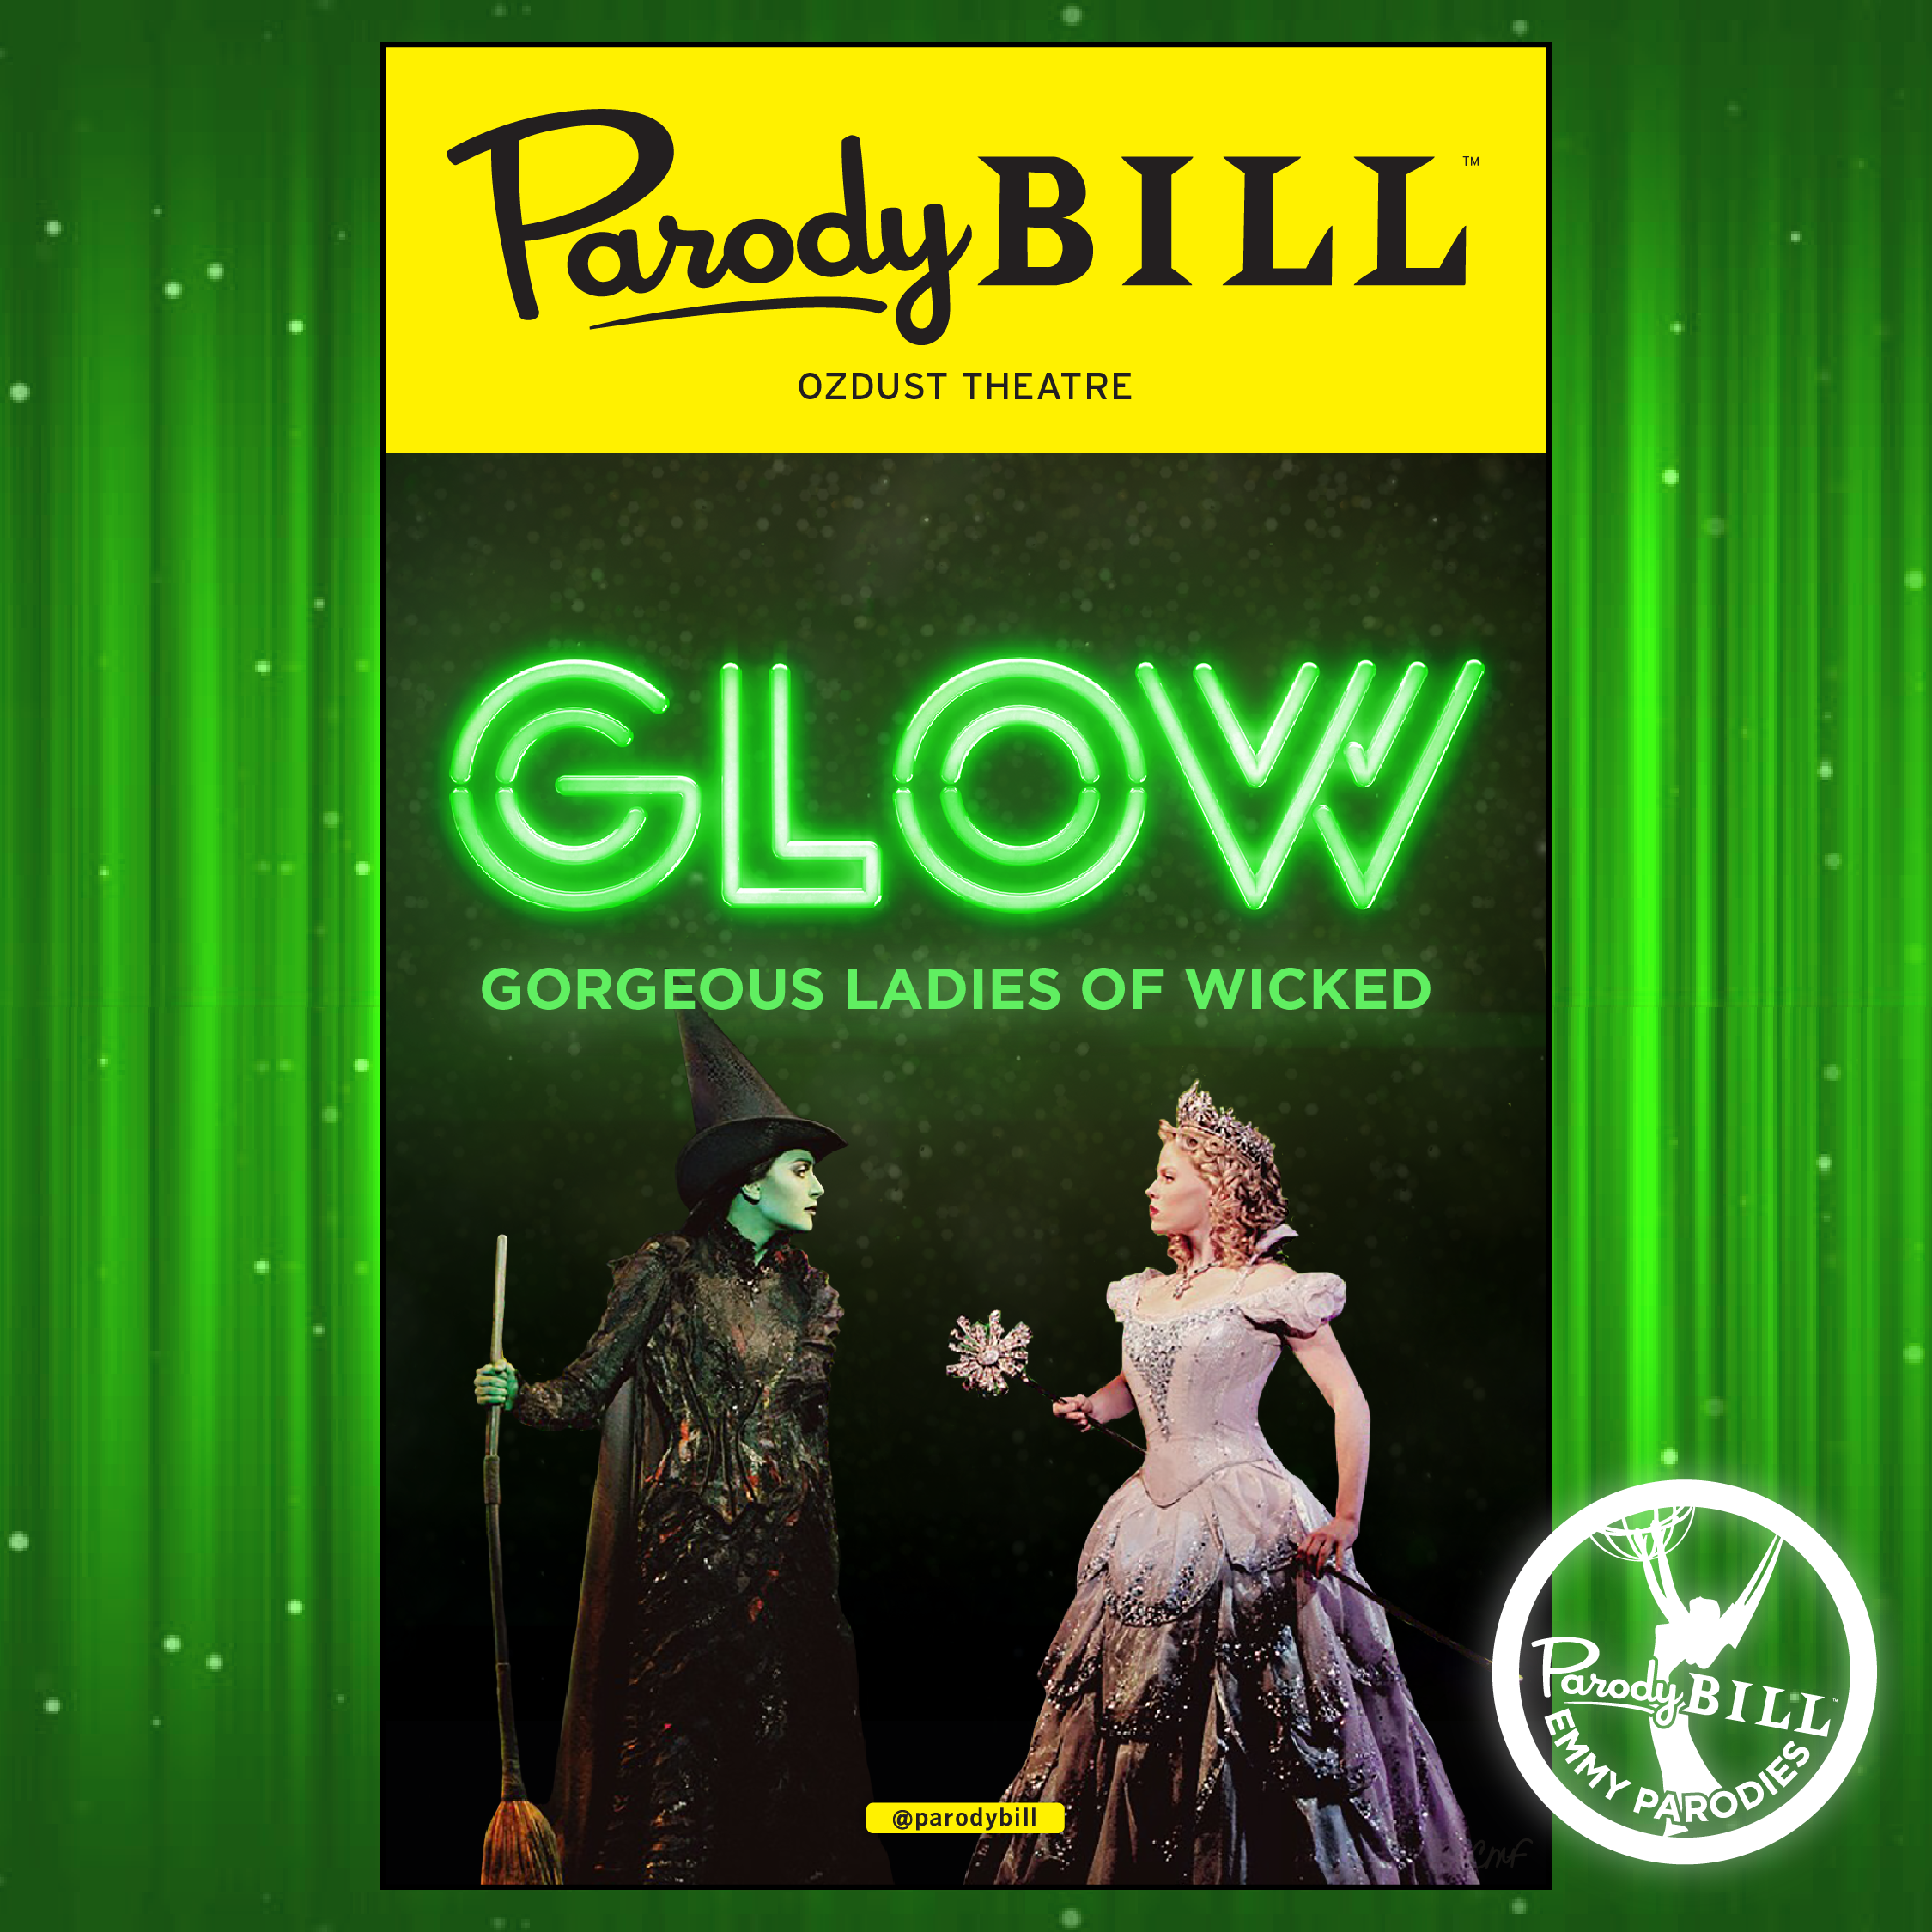 GLOW: Gorgeous Ladies of Wicked